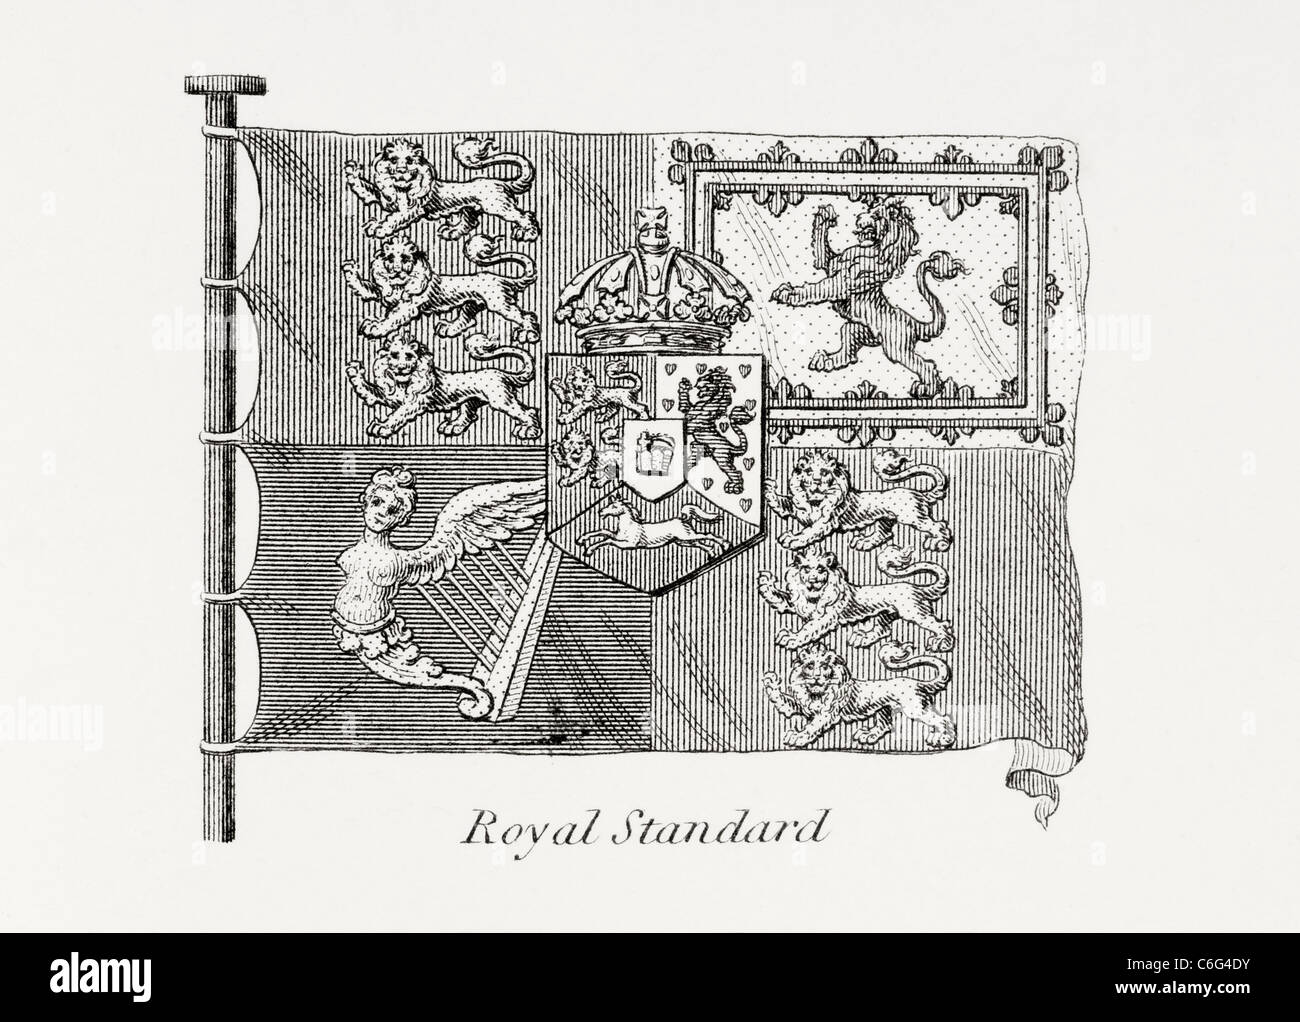 The English Royal Standard. Early 19th century. - Stock Image